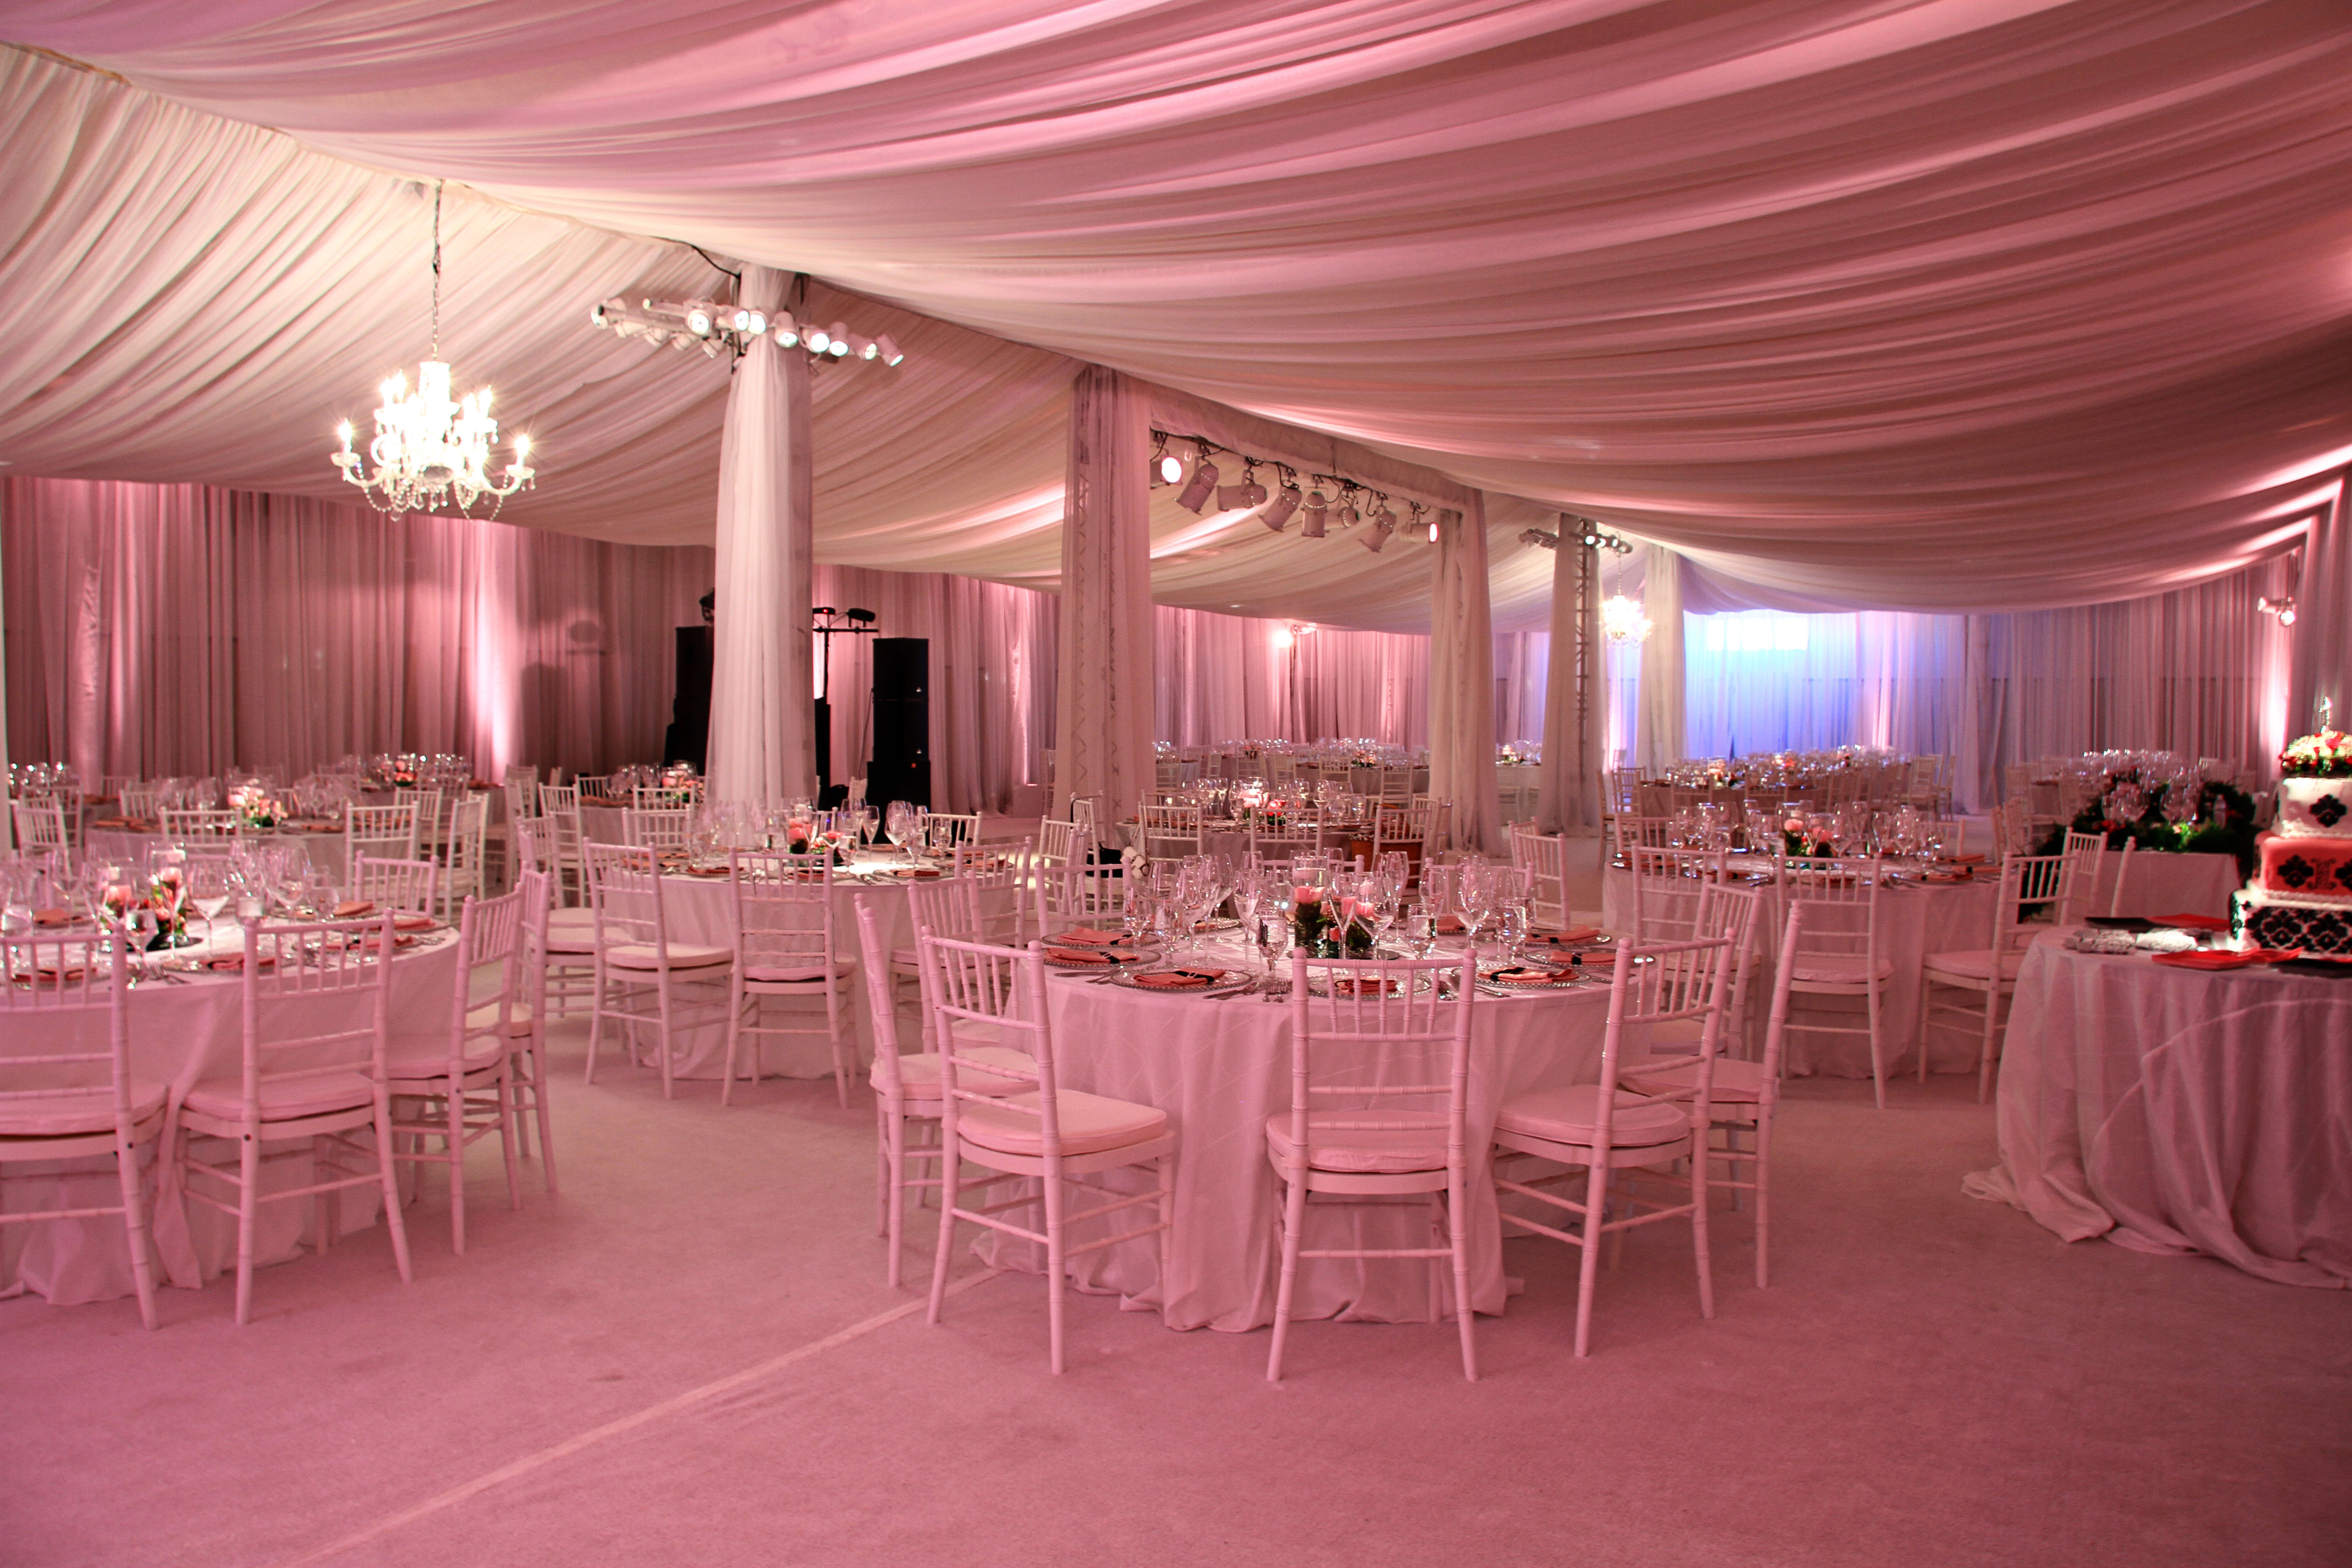 From Homely To Hot Special Event Pros Share Tips On